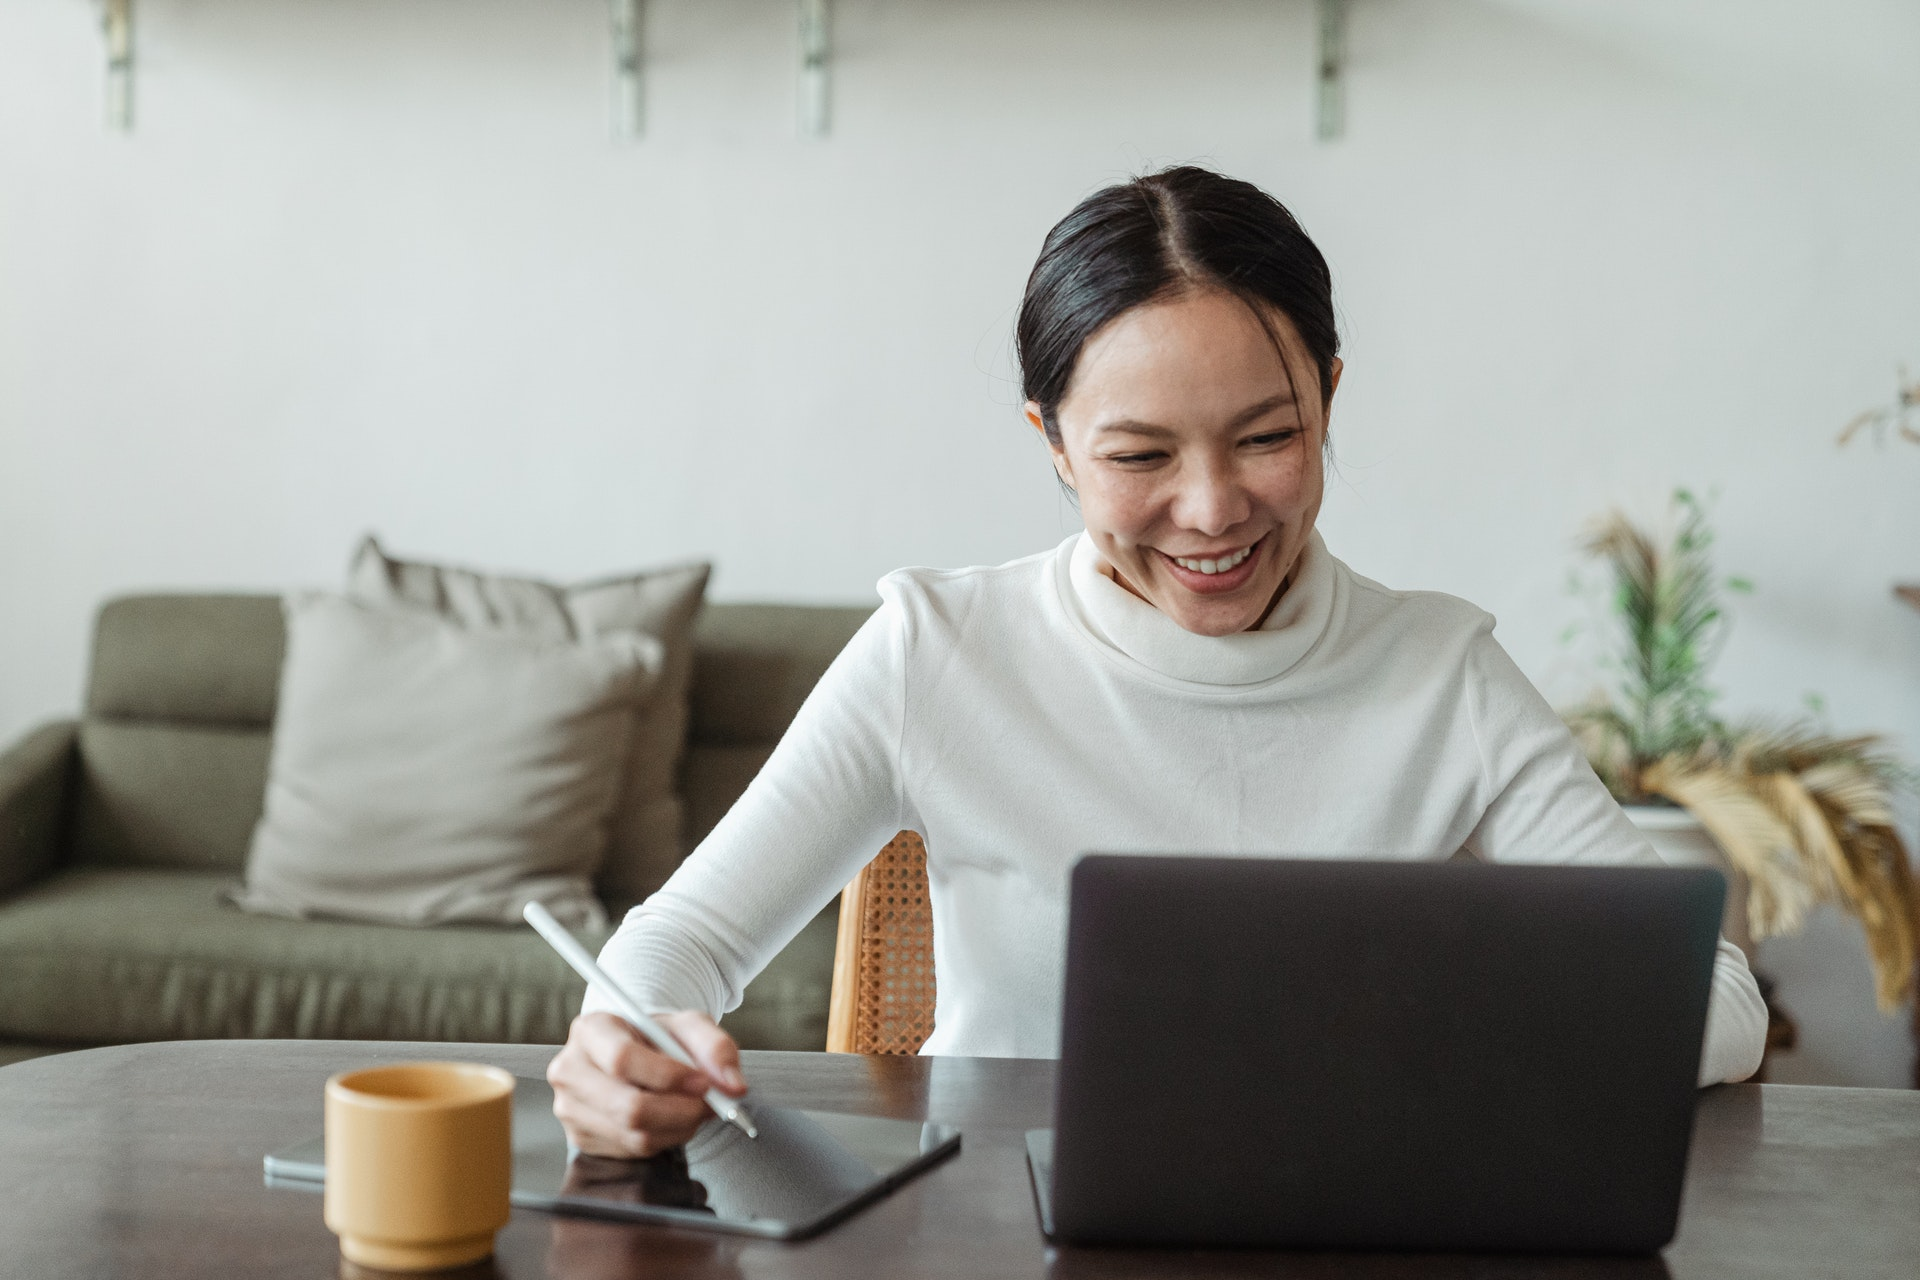 Woman happily looking at laptop